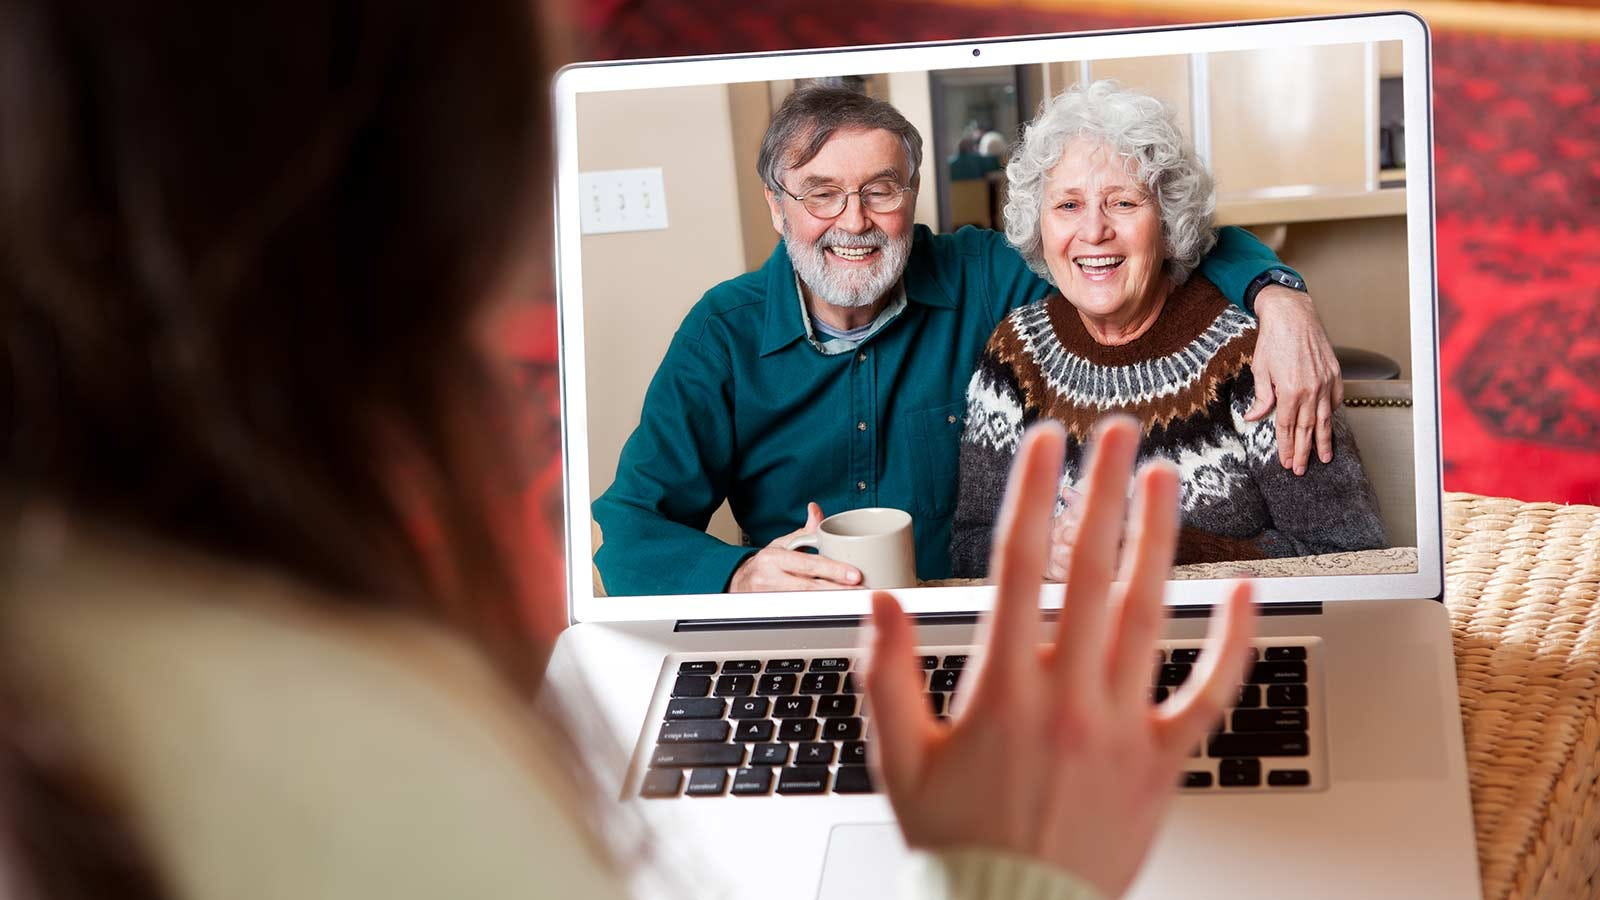 A woman's hand waving at an older man and woman on a laptop screen.